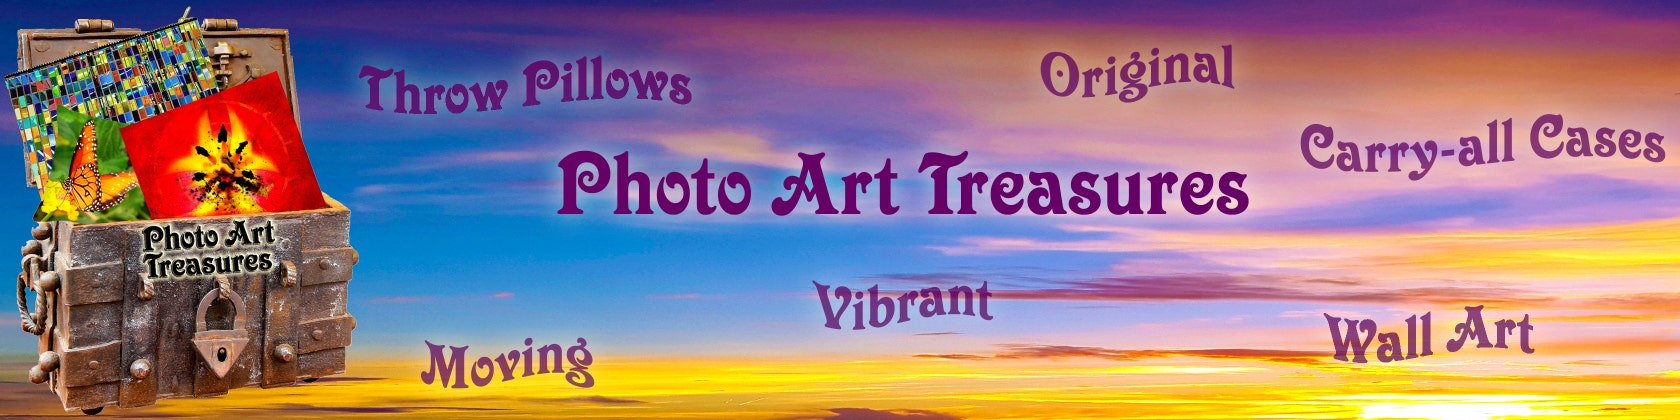 Photo Art Treasures on Etsy